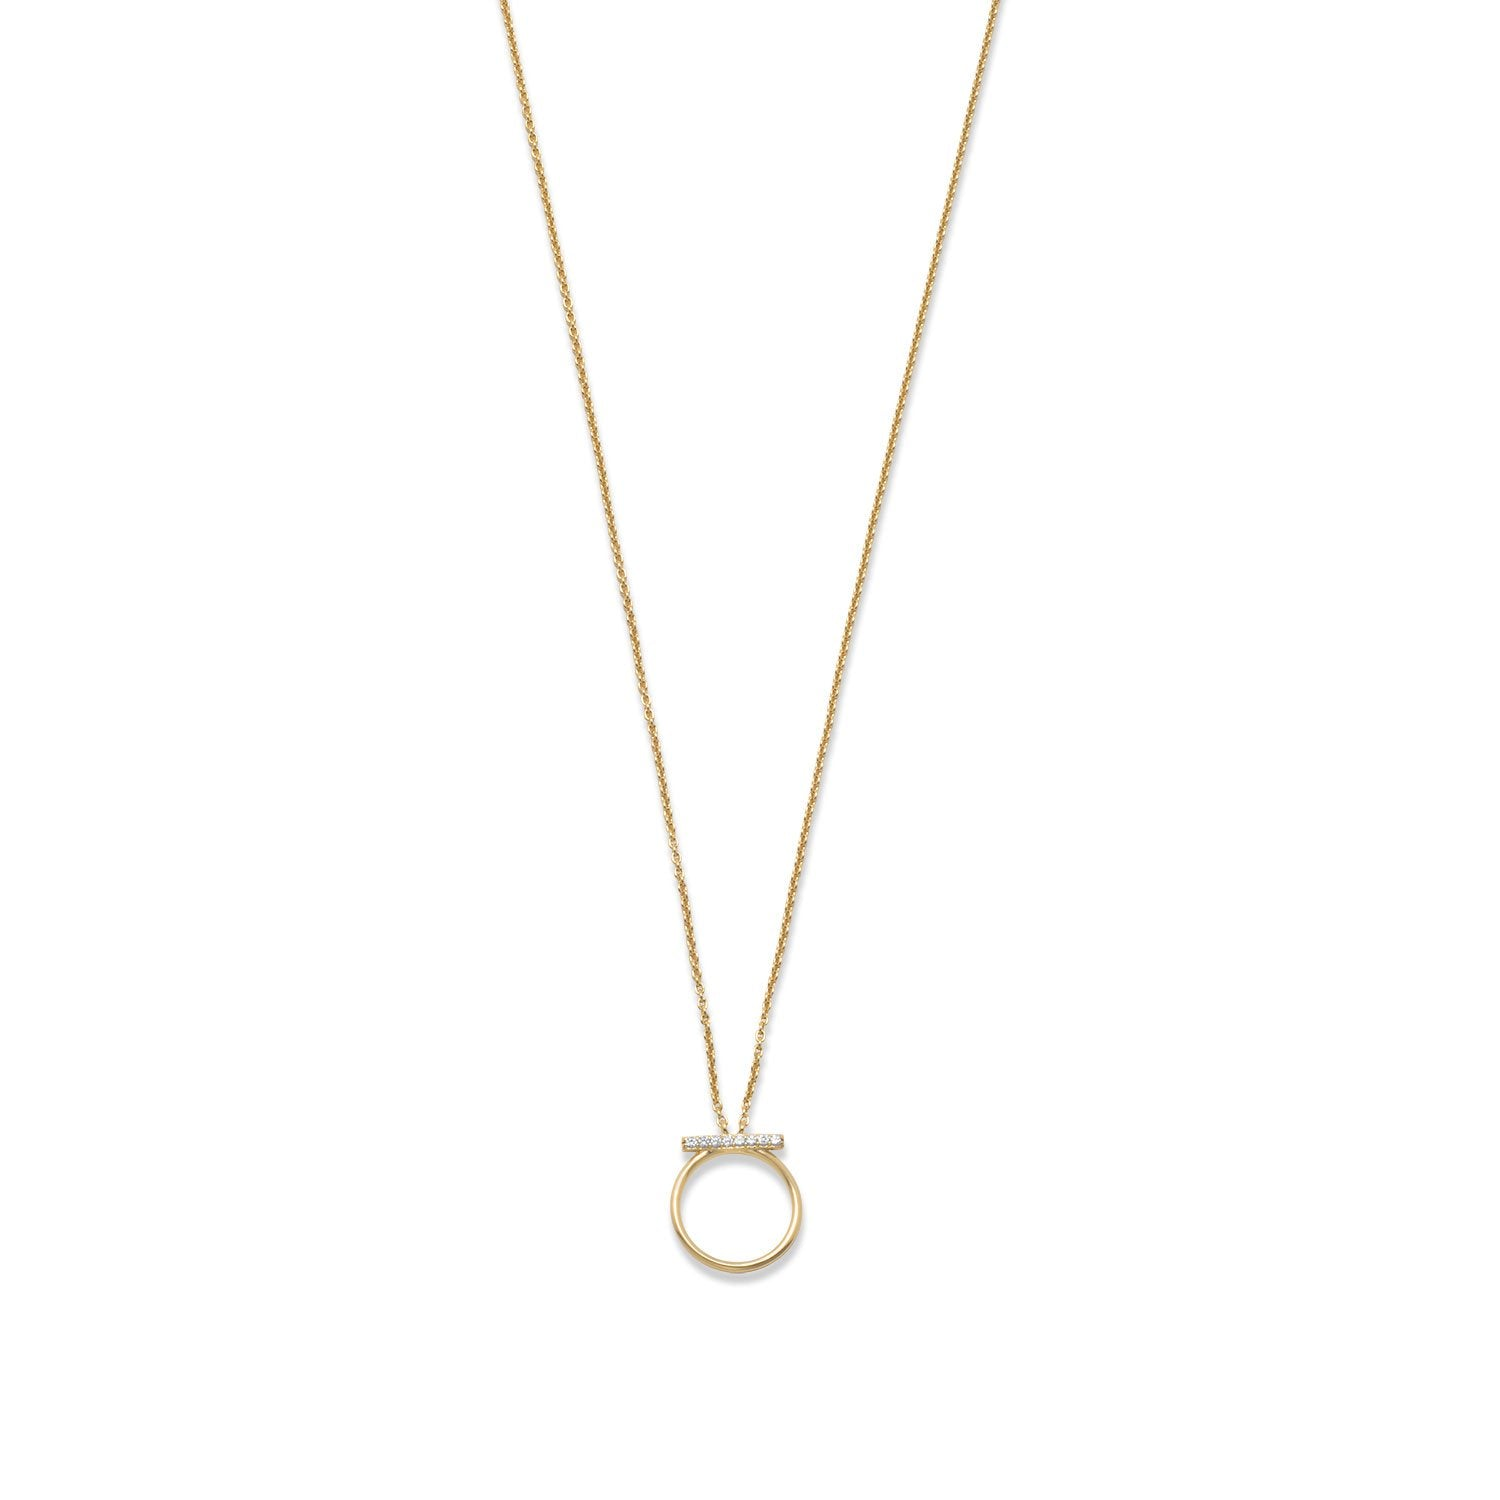 18 Karat Gold Plated CZ Bar and Circle Necklace - Rocky Mt. Discount Outlet